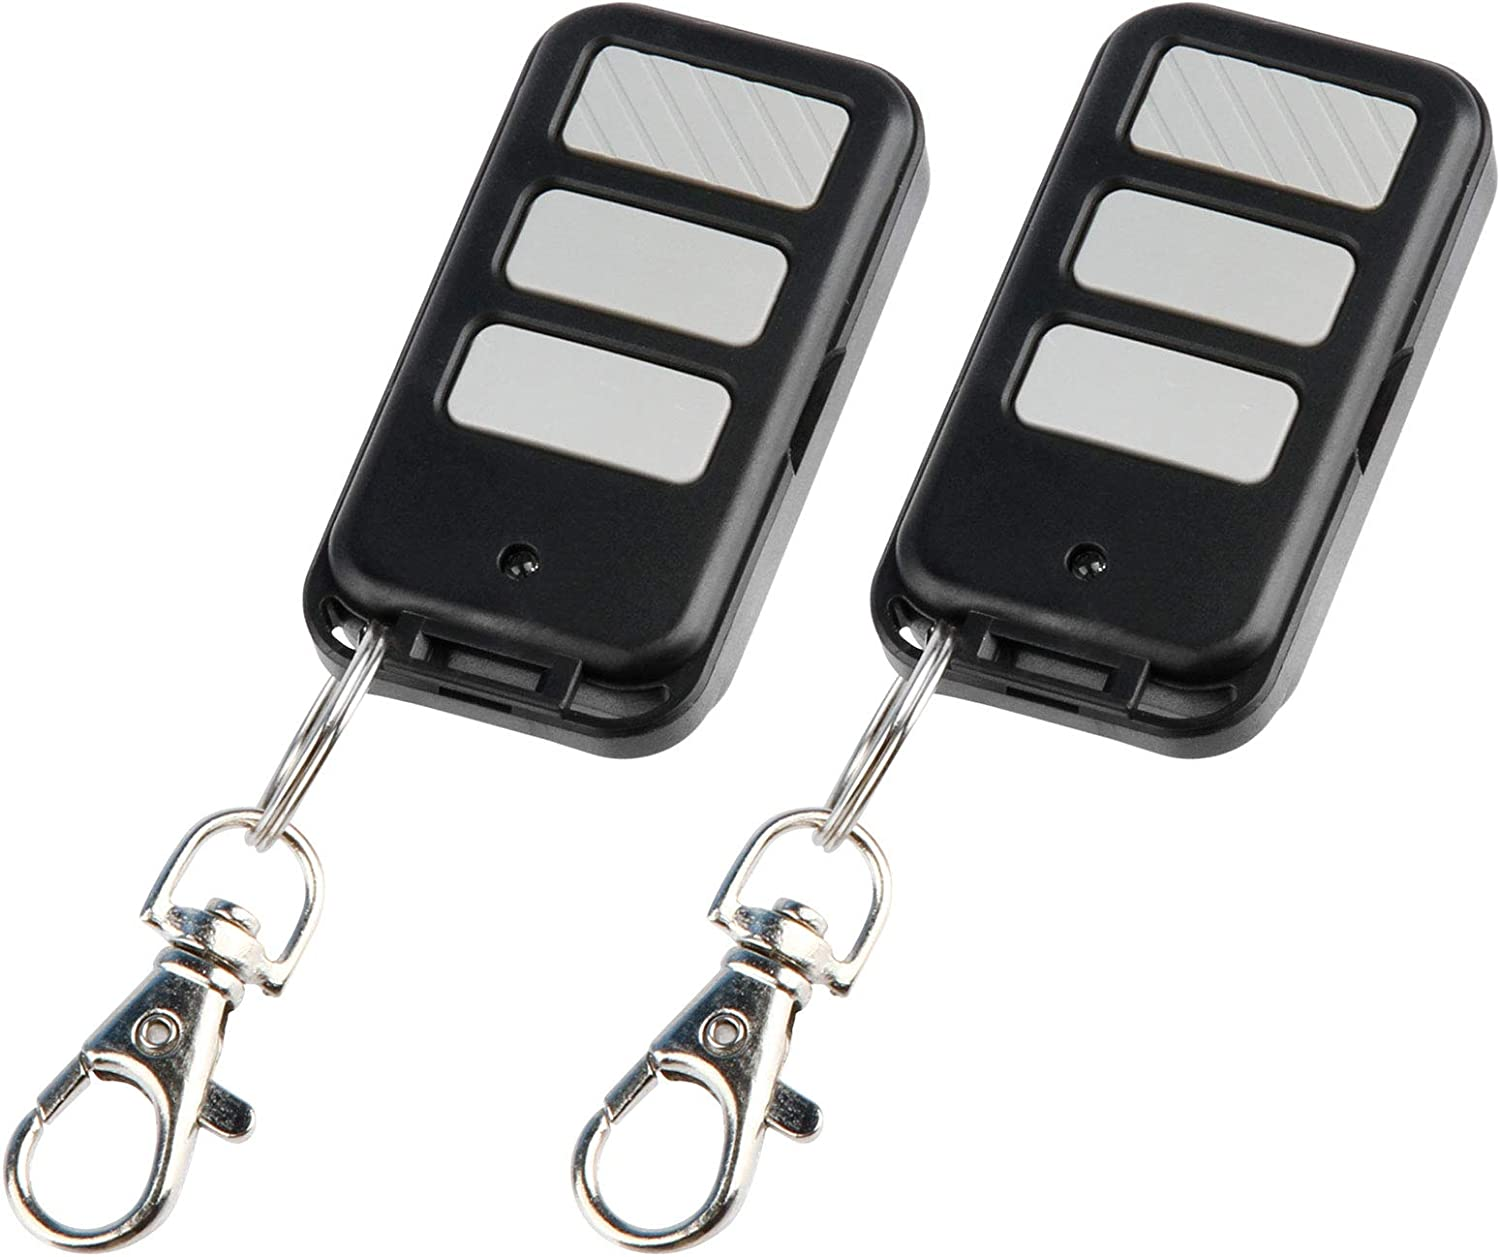 2 Mini Key Chain Garage Door Opener Remote for Liftmaster 971LM 973LM (1997-2005 Red Button)